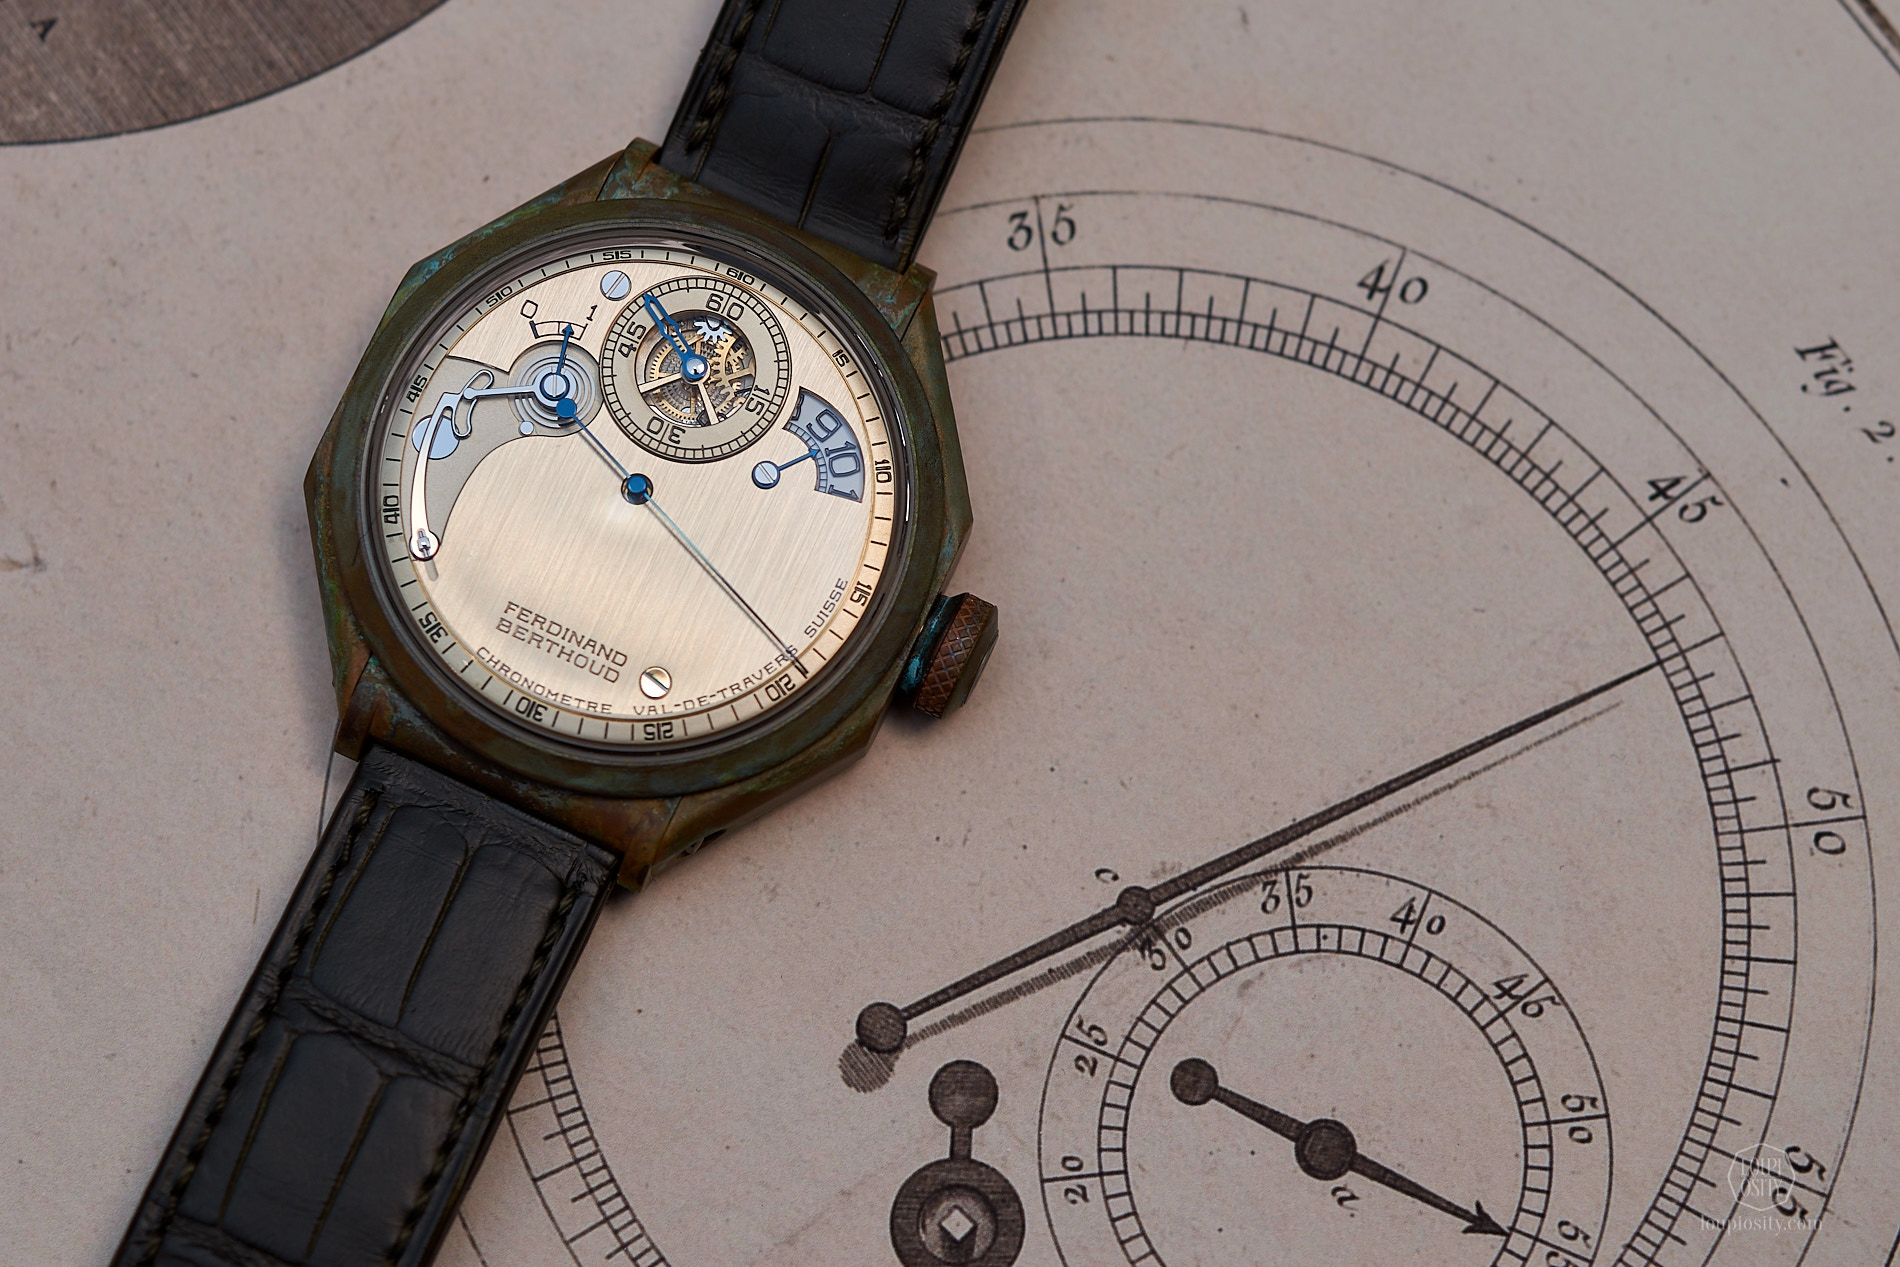 Chronometre FB 1R Edition 1785